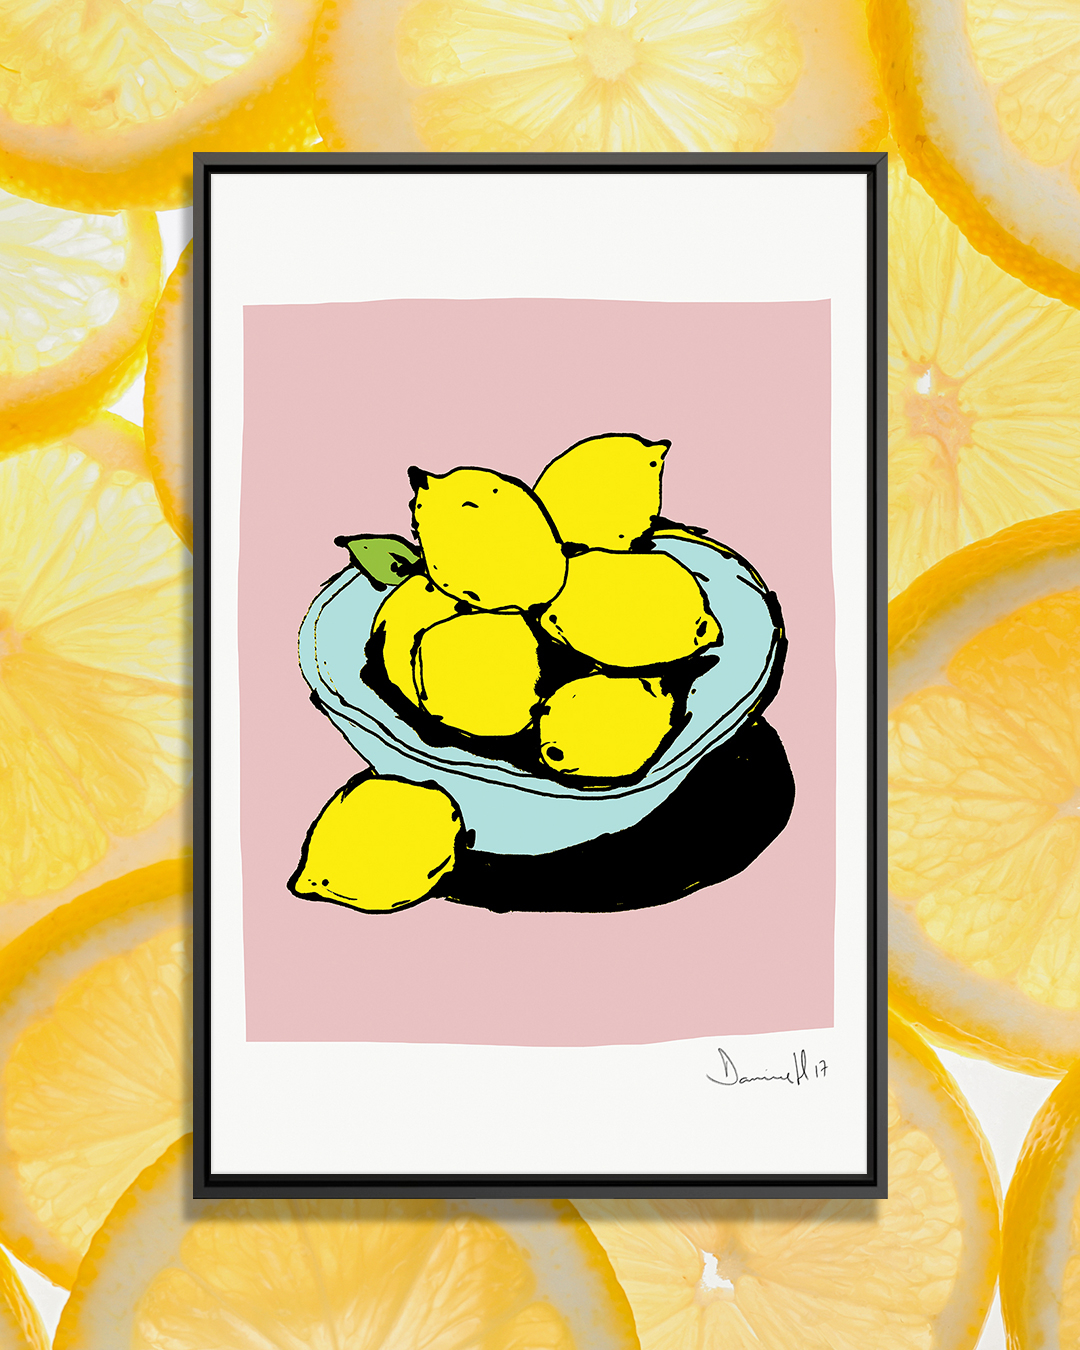 Lemons by Dan Hobday showcases a minimalist line illustration of seven lemons sitting in a blue bowl against a pink background